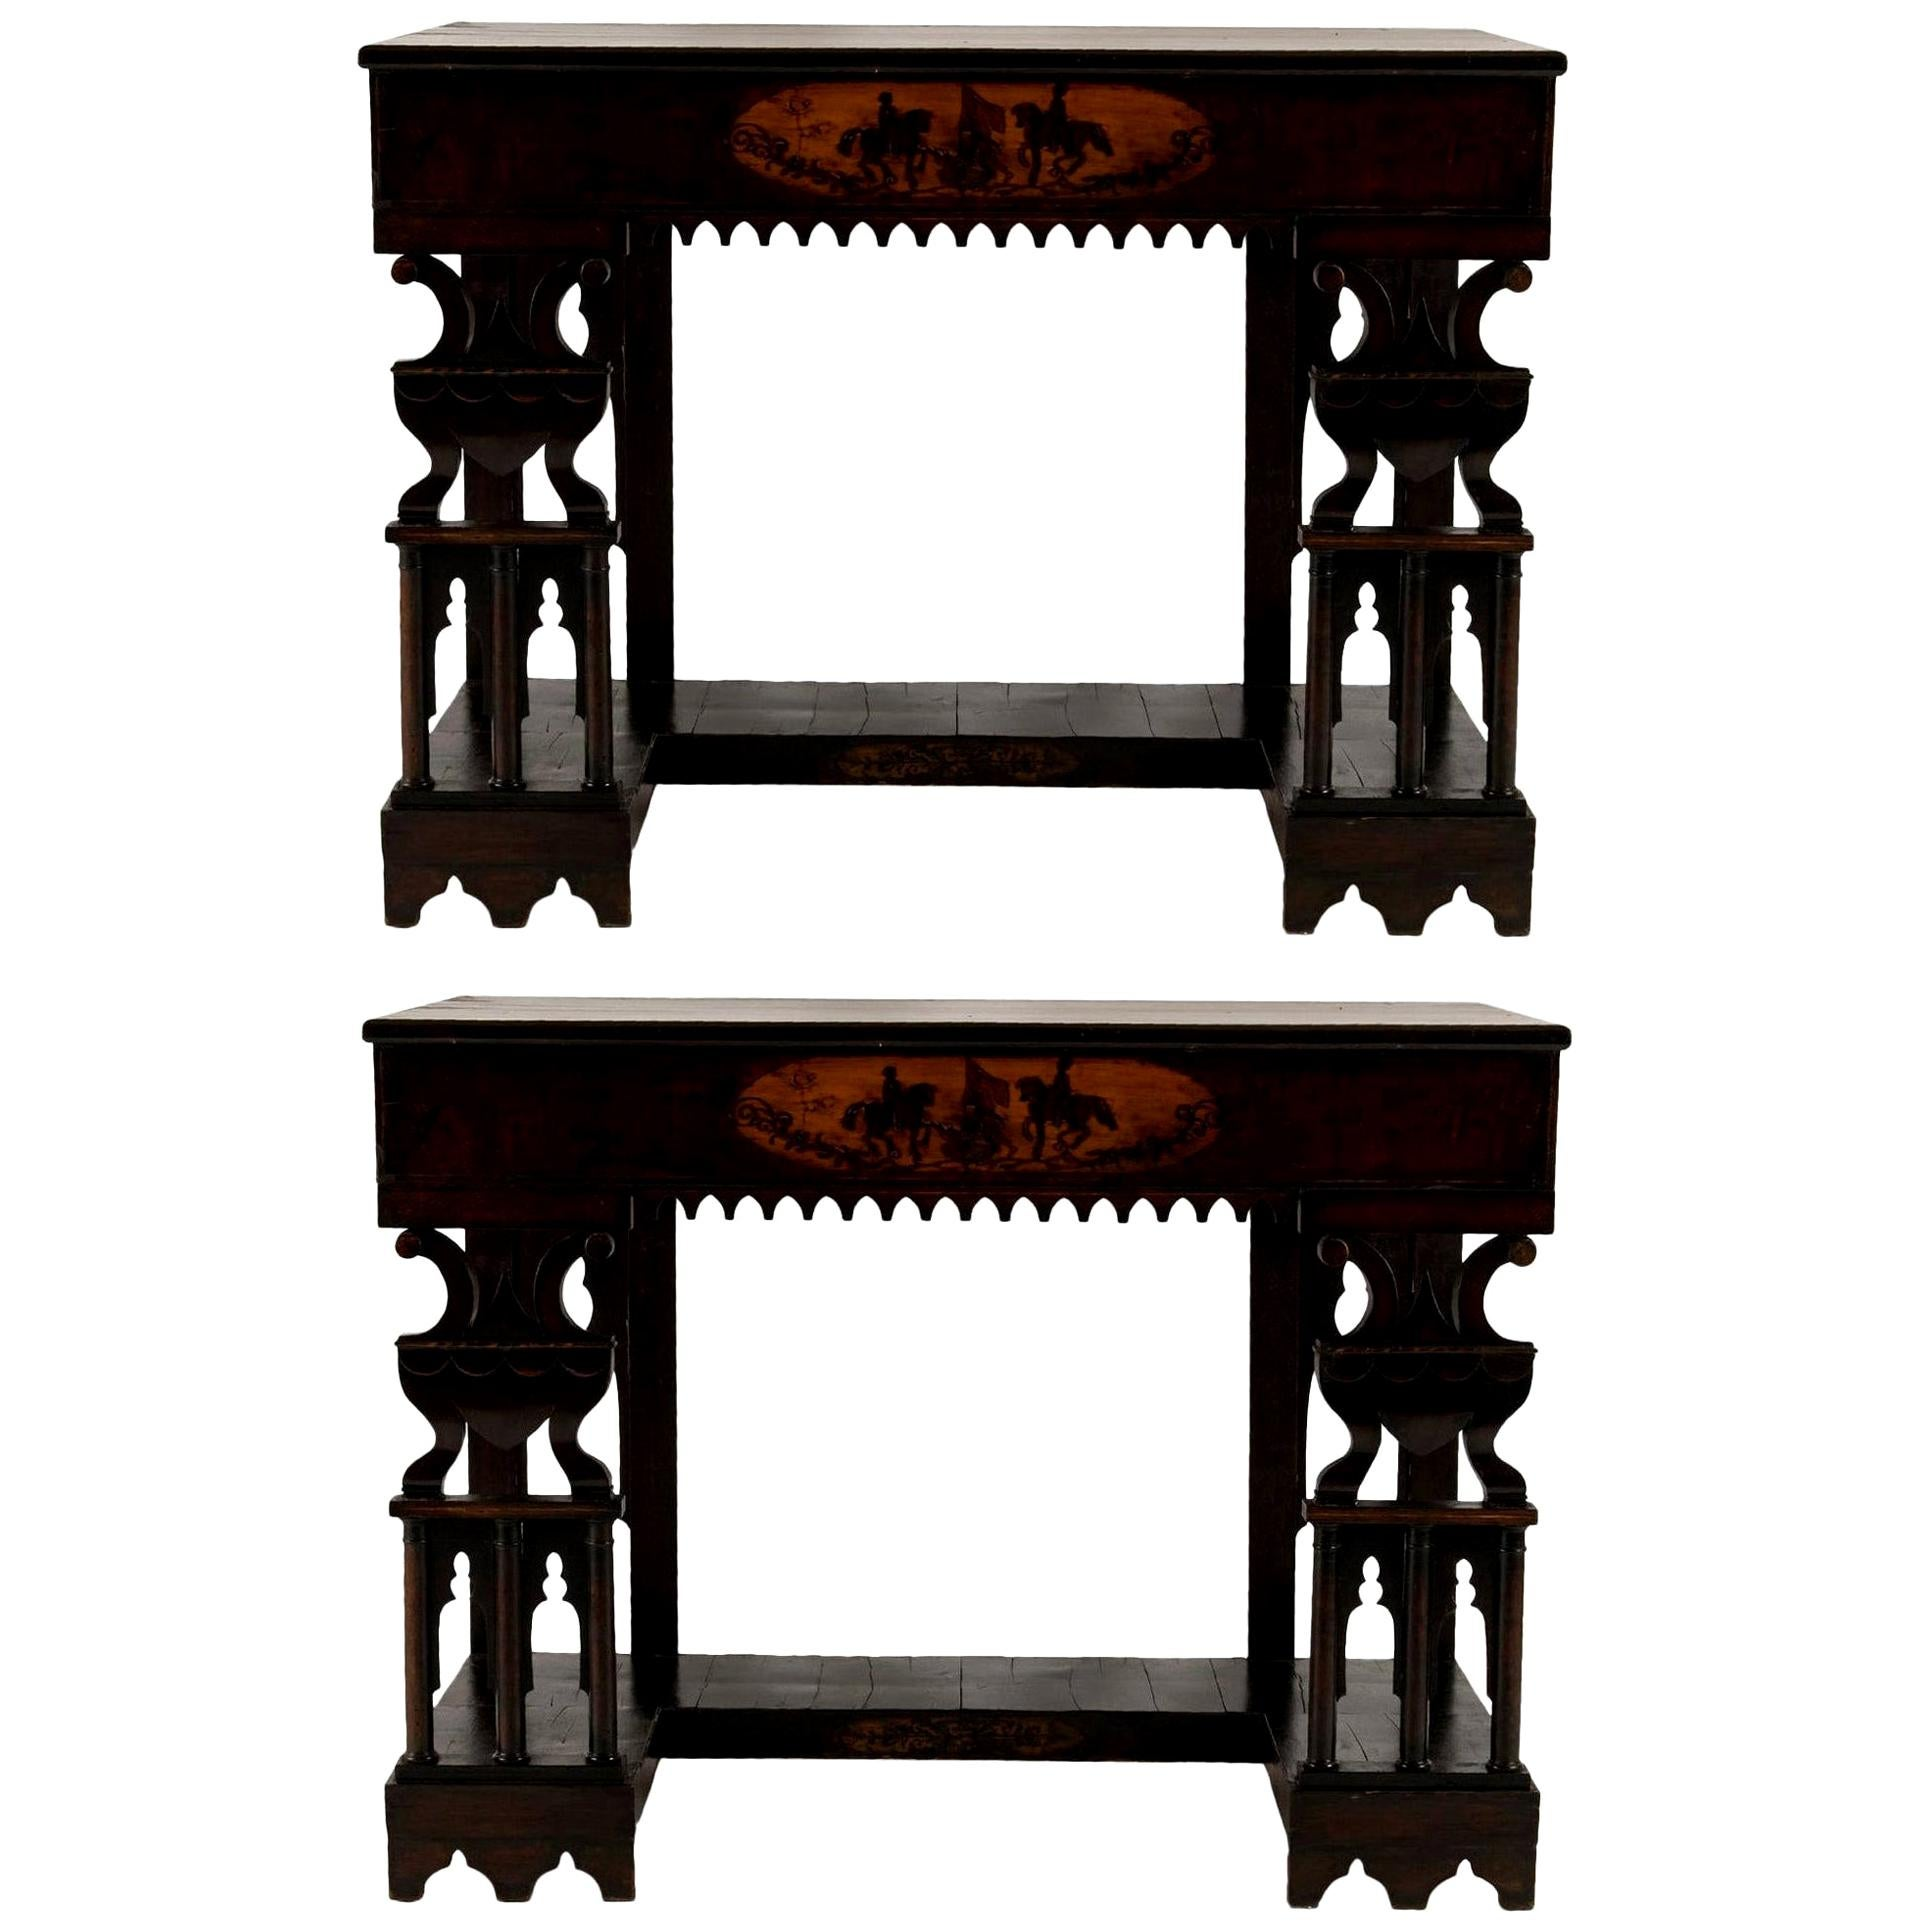 Pair of Early 19th Century Neapolitan Consoles